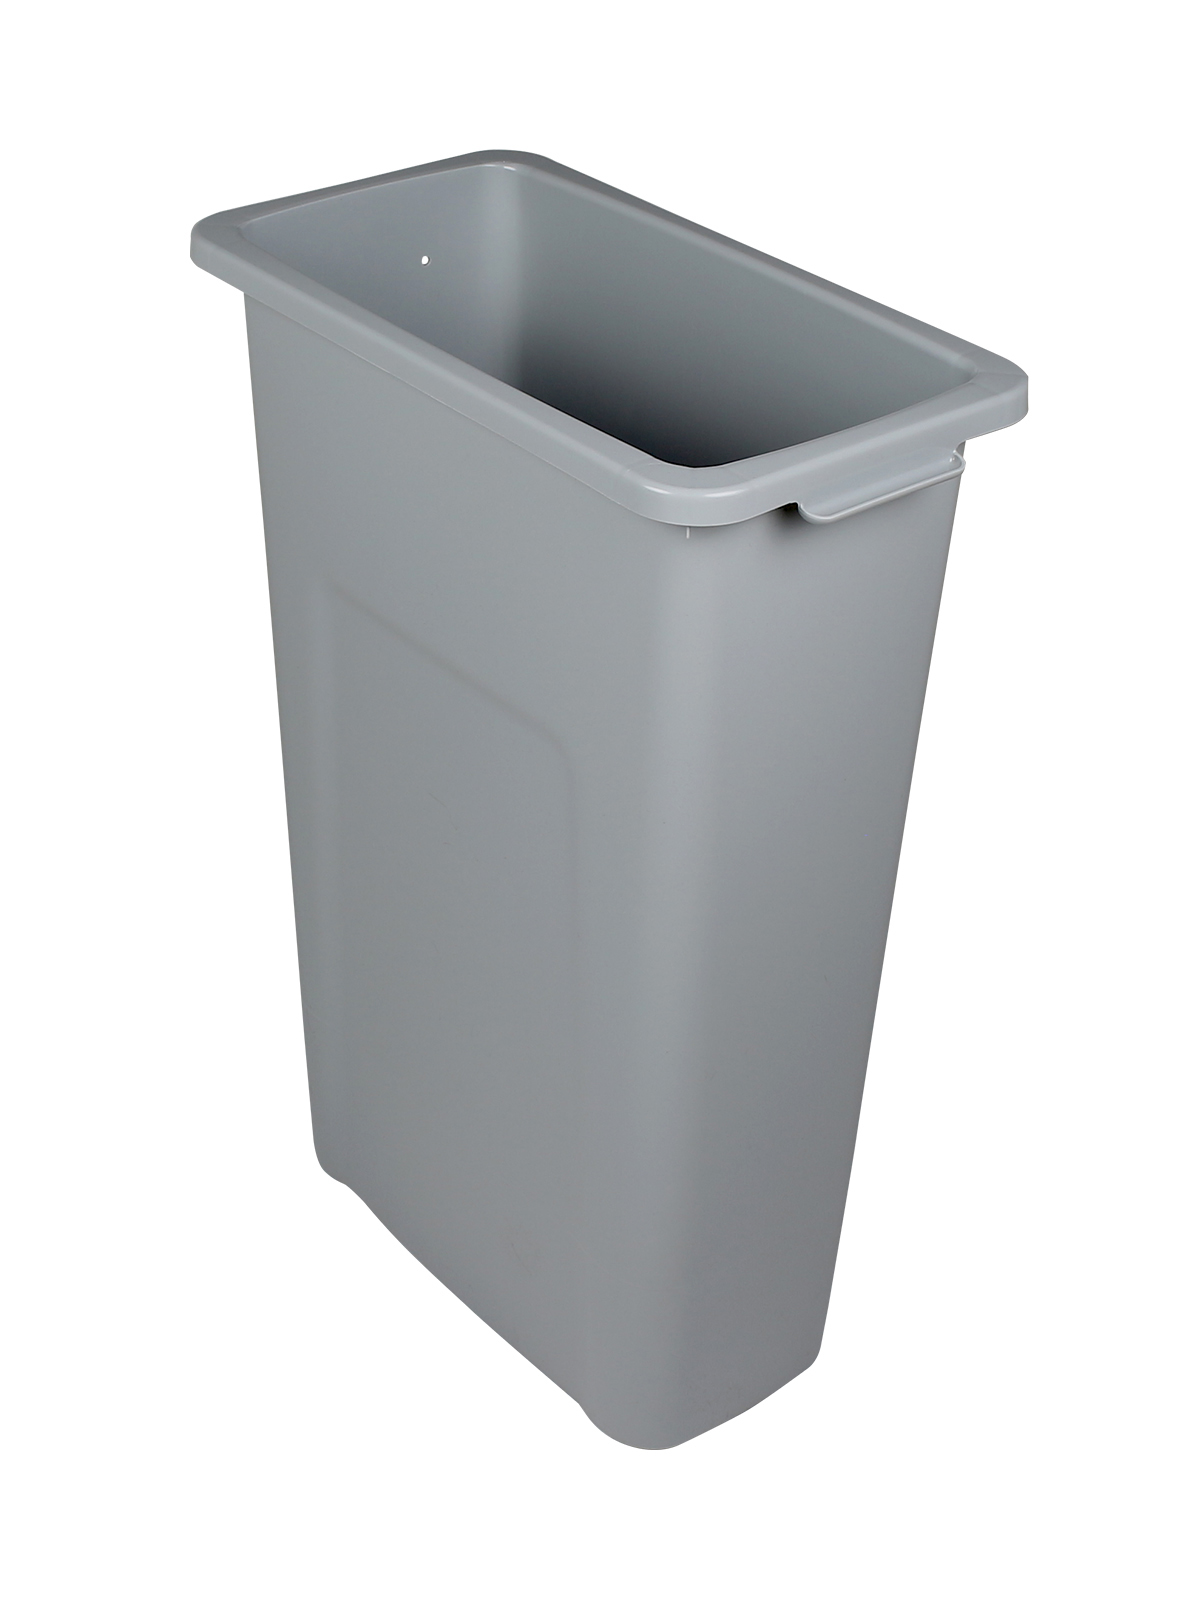 WASTE WATCHER - Single - Body - 27 - Executive Grey